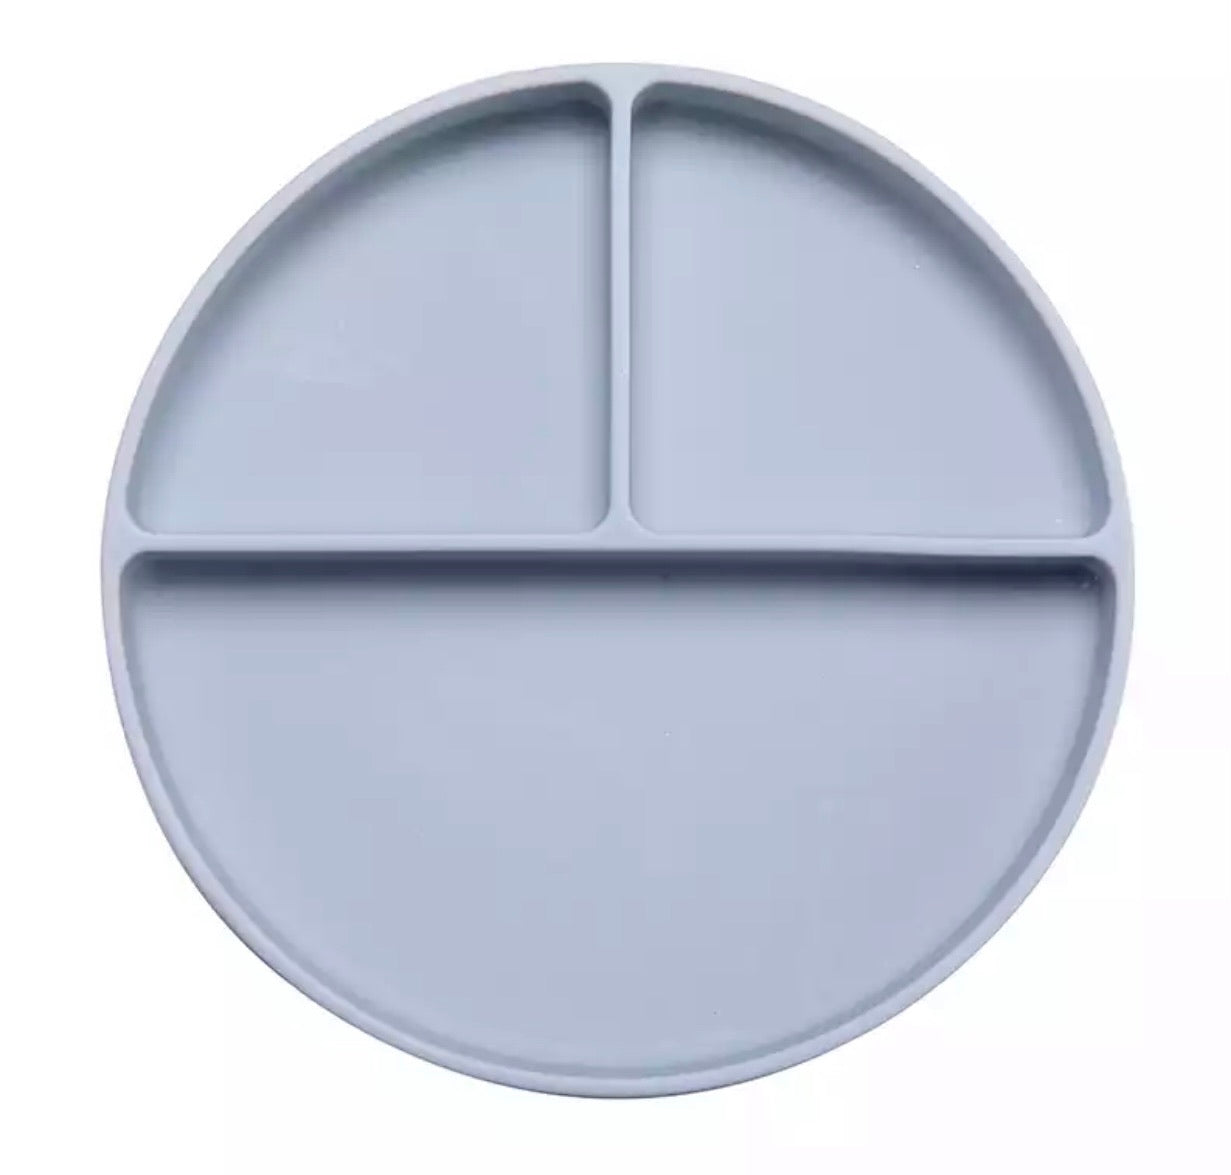 Silicone Suction Divider Plate | Blue Grey